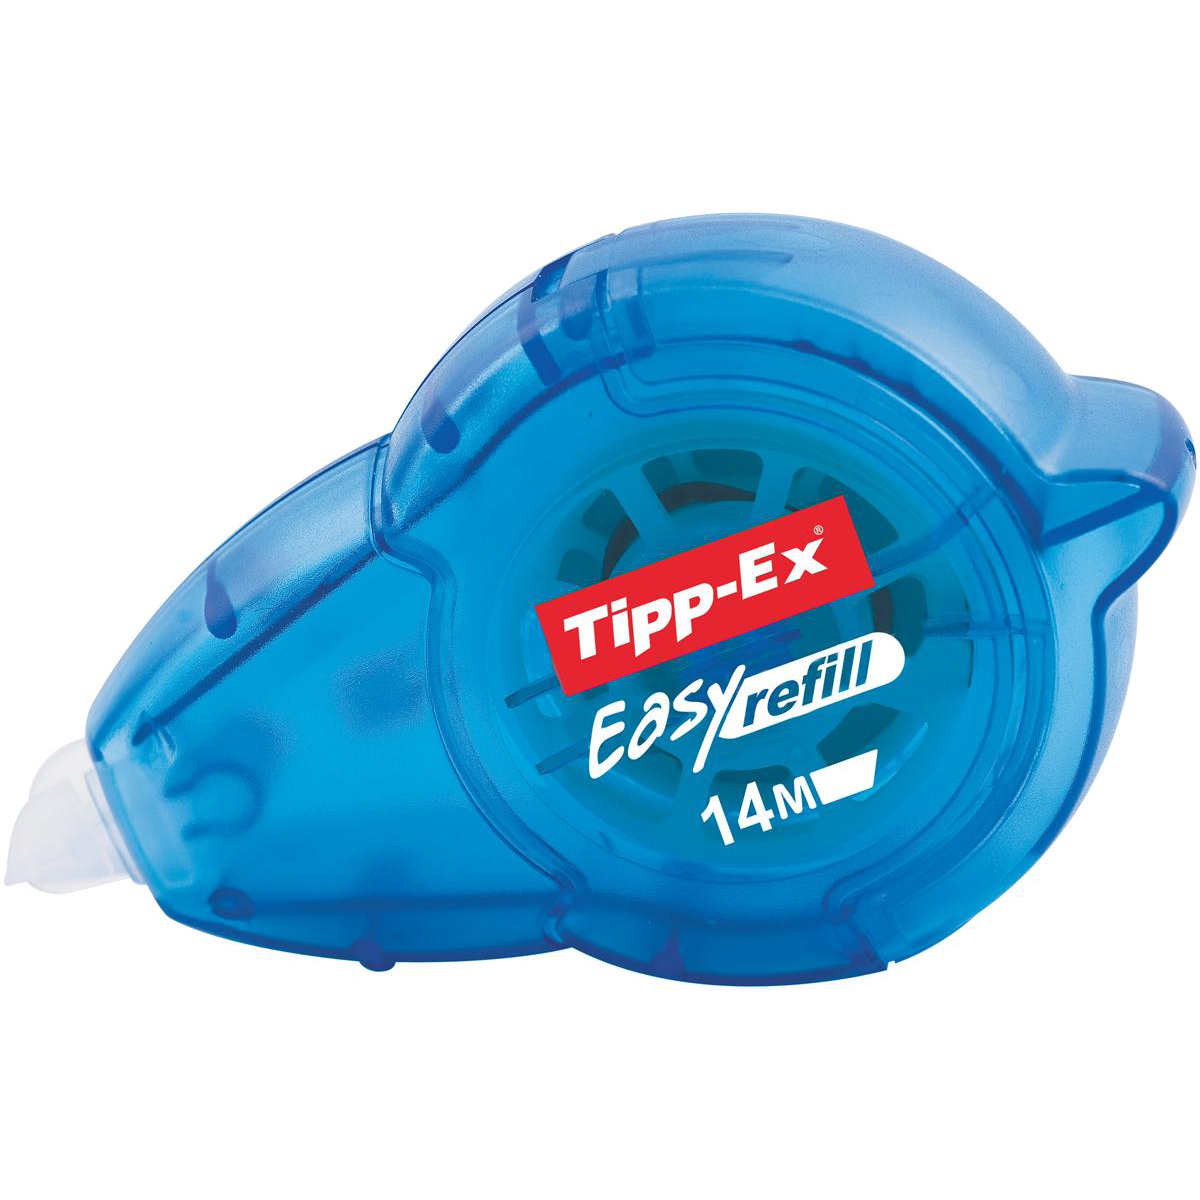 Correction Tape Tipp-Ex Easy-refill Correction Tape Roller 5mmx14m Ref 8794242 Pack 10